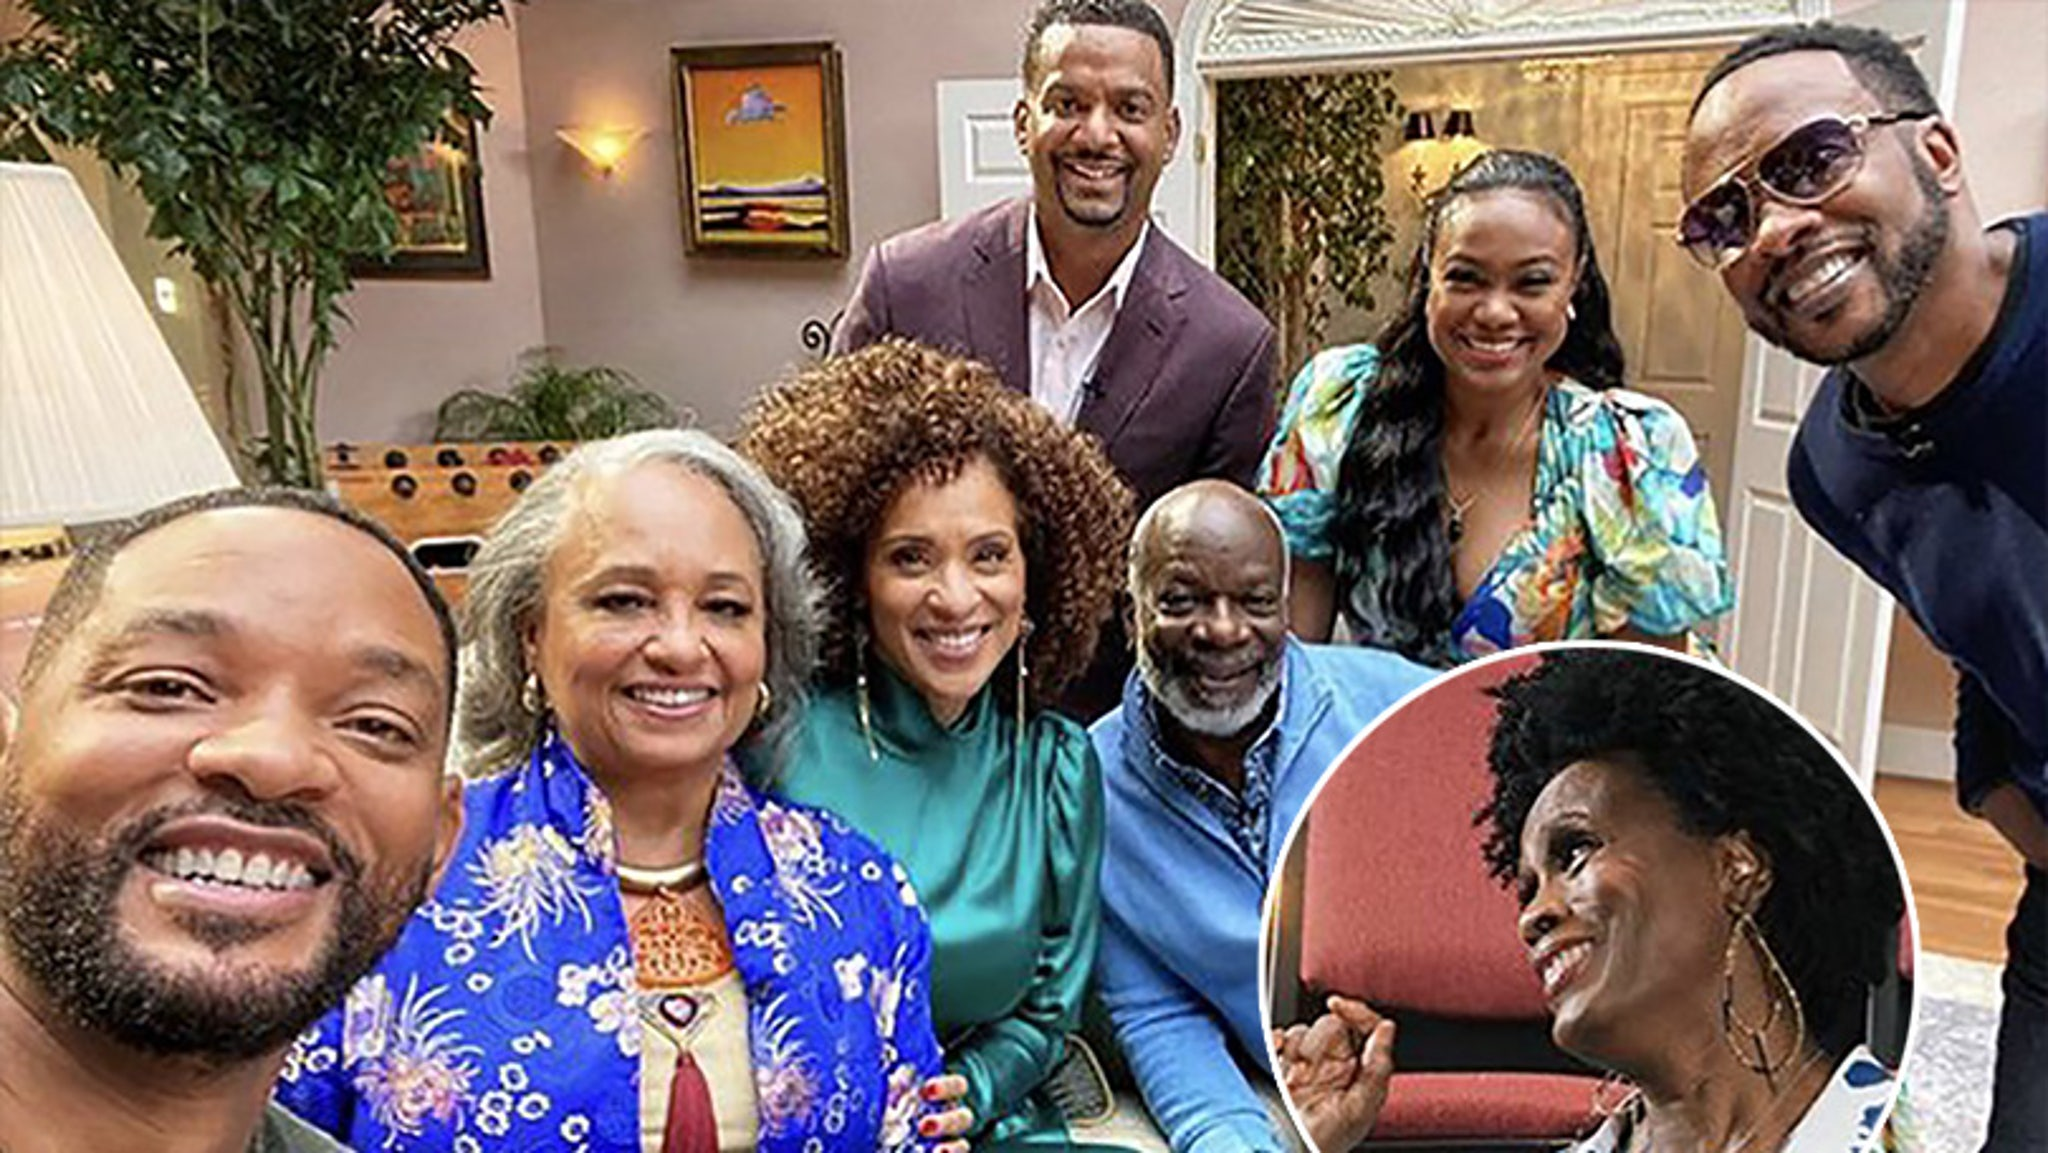 Will Smith Teases Fresh Prince of Bel-Air Reunion — With OG Aunt Viv Janet Hubert – TooFab